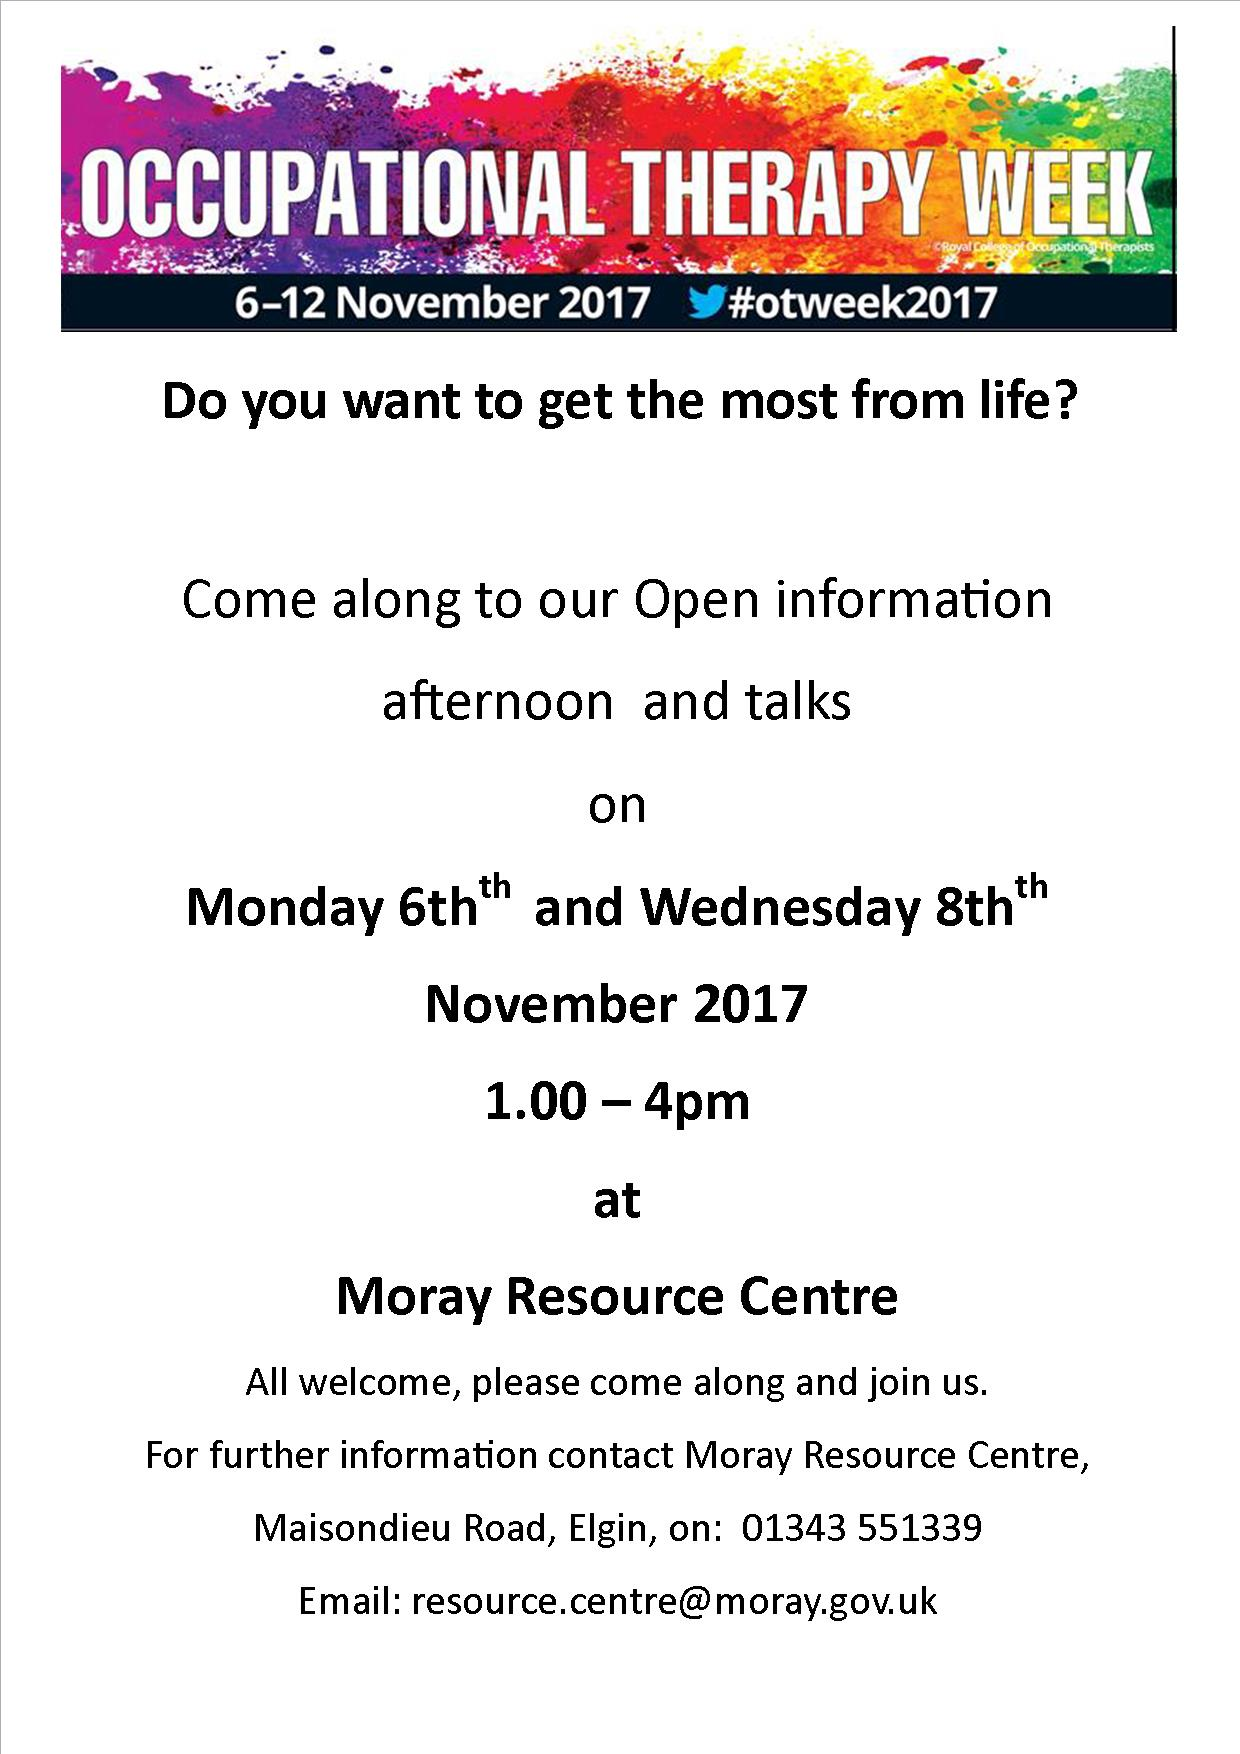 Activity Occupational Therapy Week At Moray Resource Centre